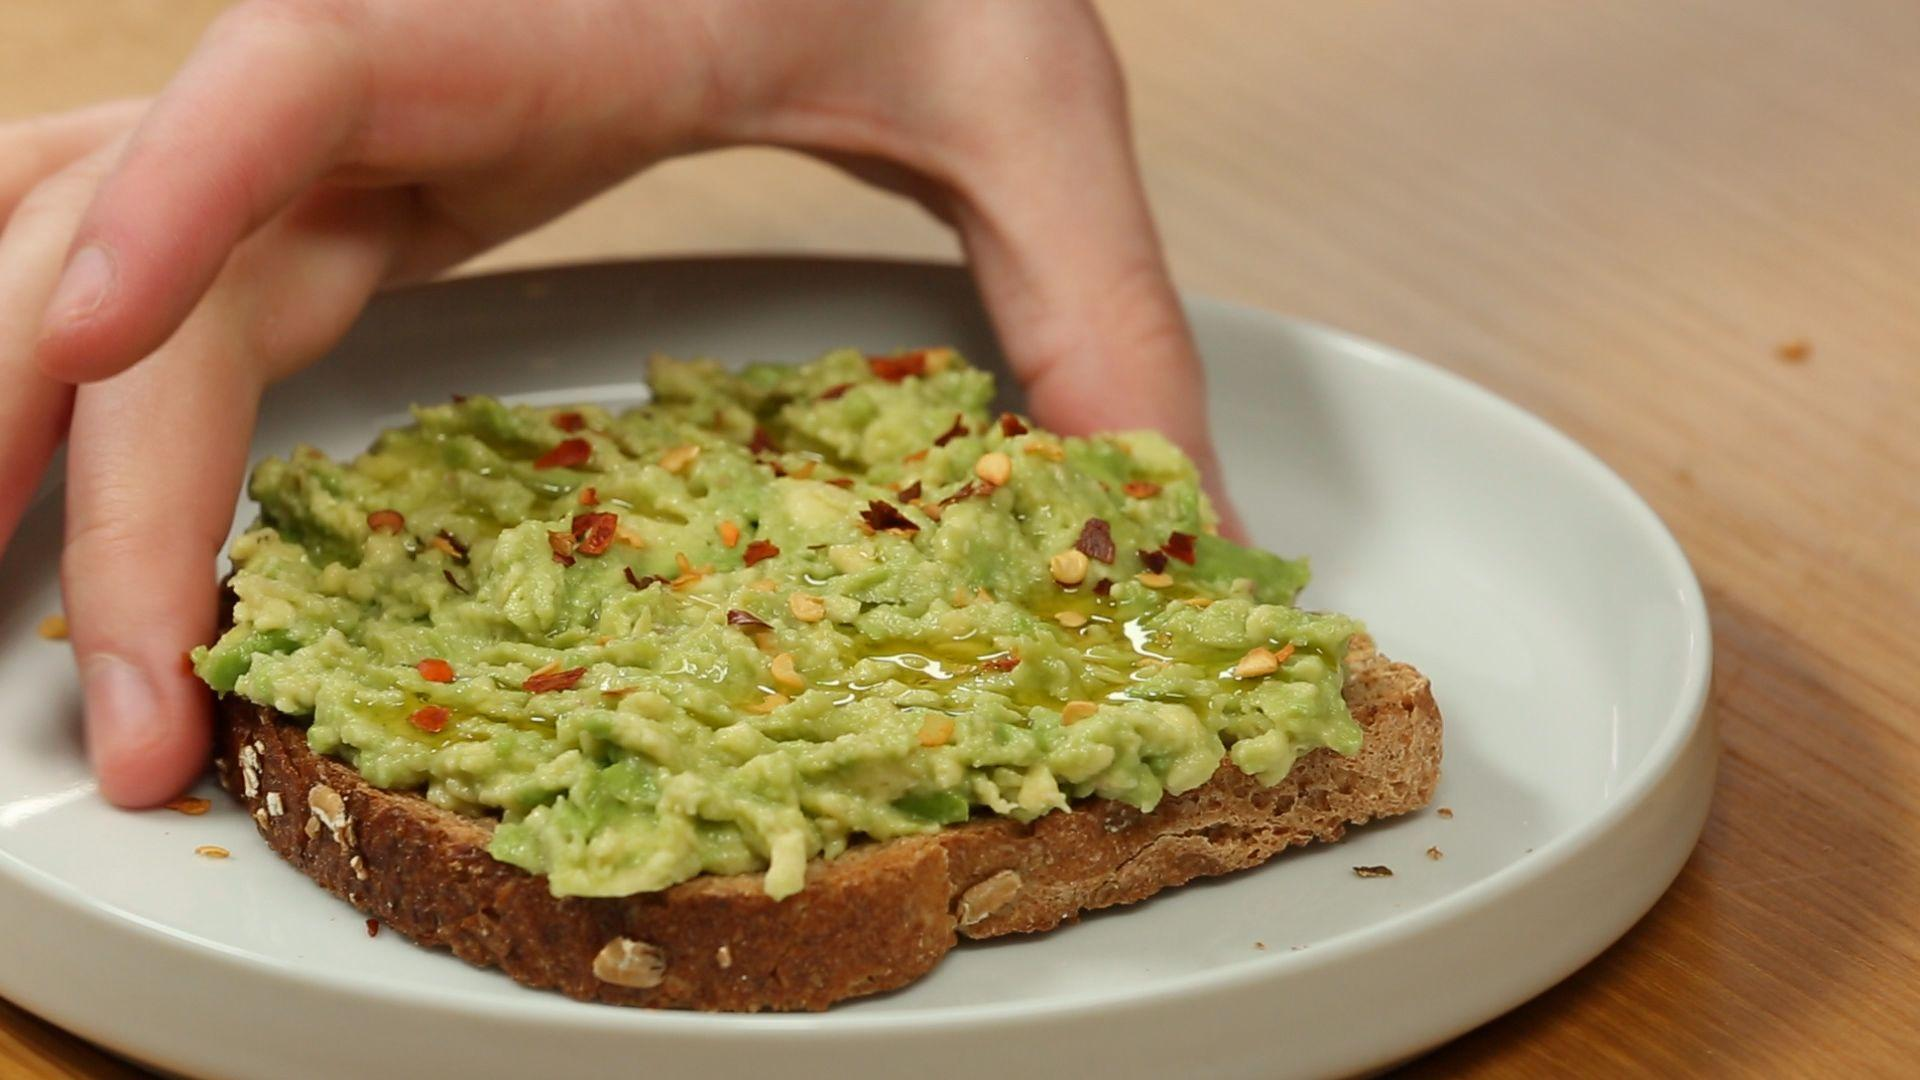 How to Make Healthy Spicy Avocado Breakfast Toast